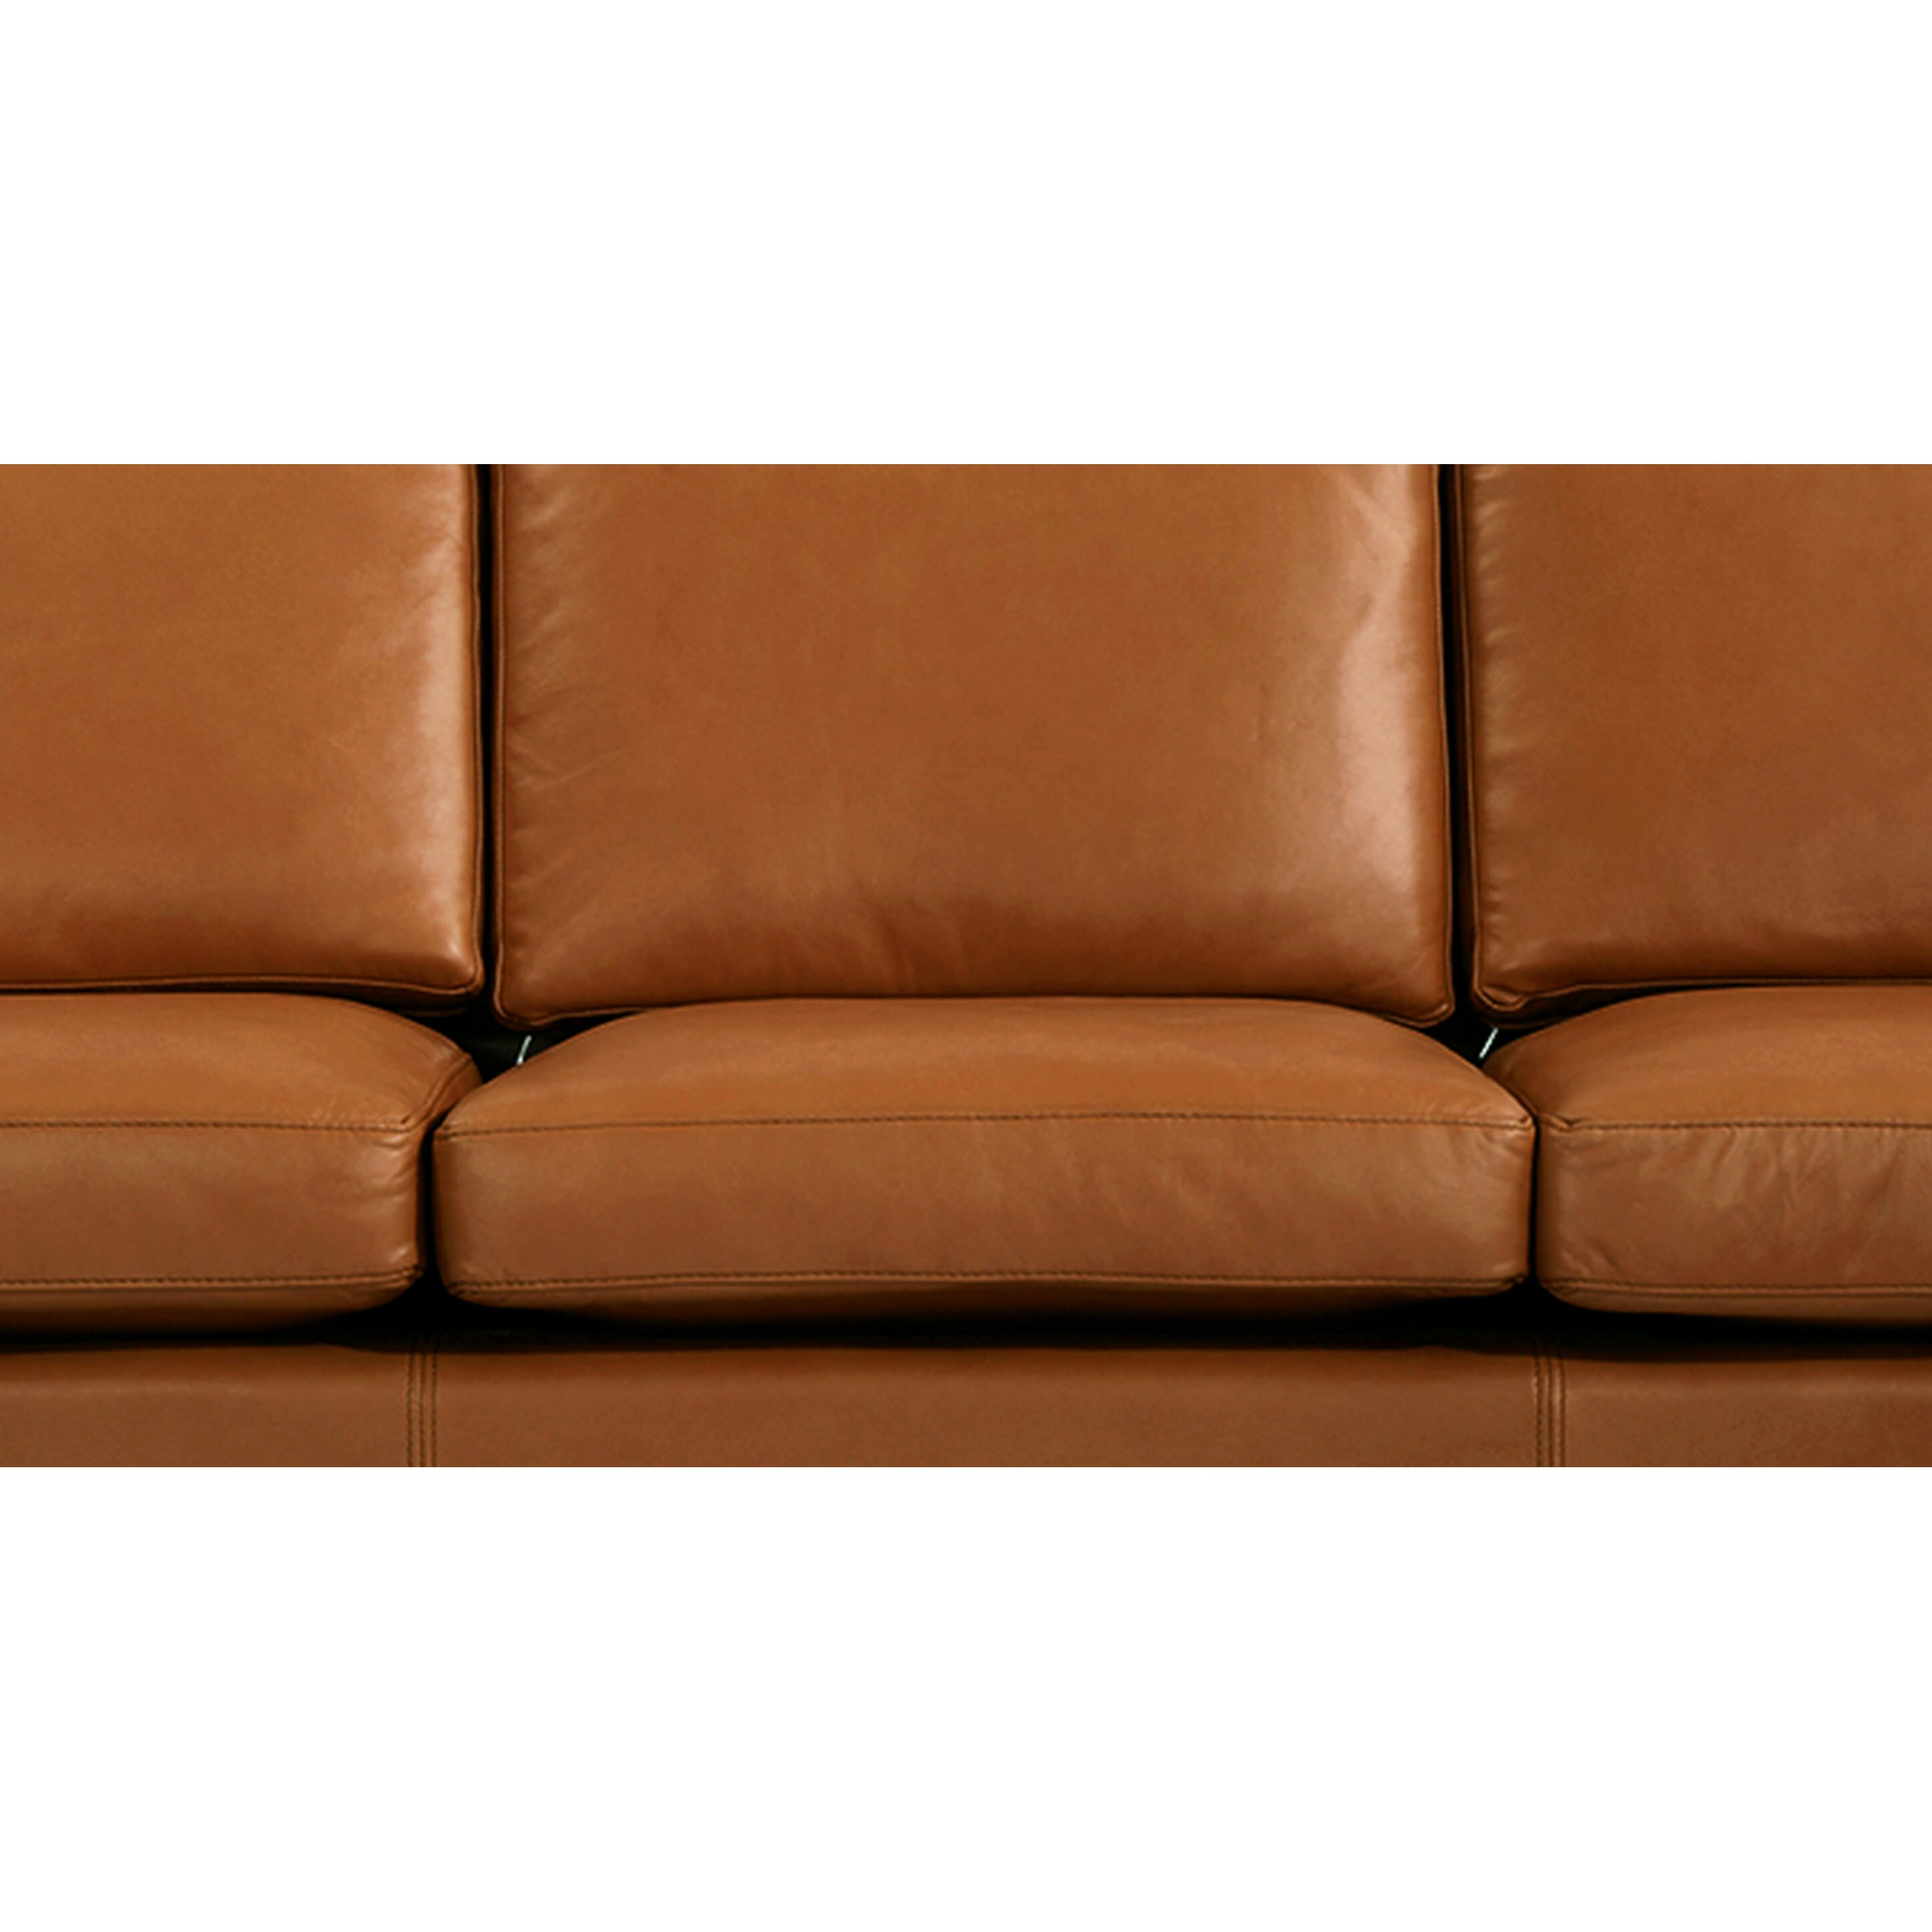 Mid Century Modern Leather Sofa: Monroe Mid Century Modern Leather Sofa